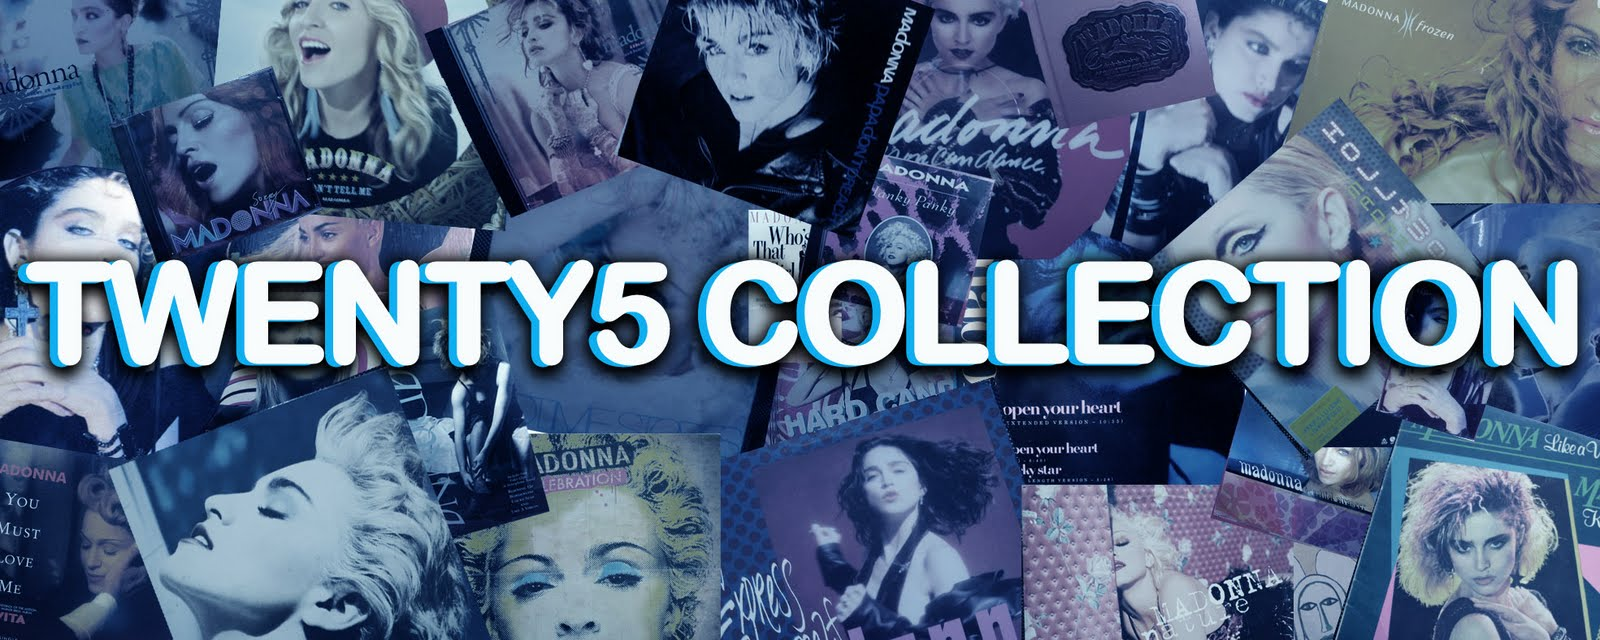 Twenty5 Collection